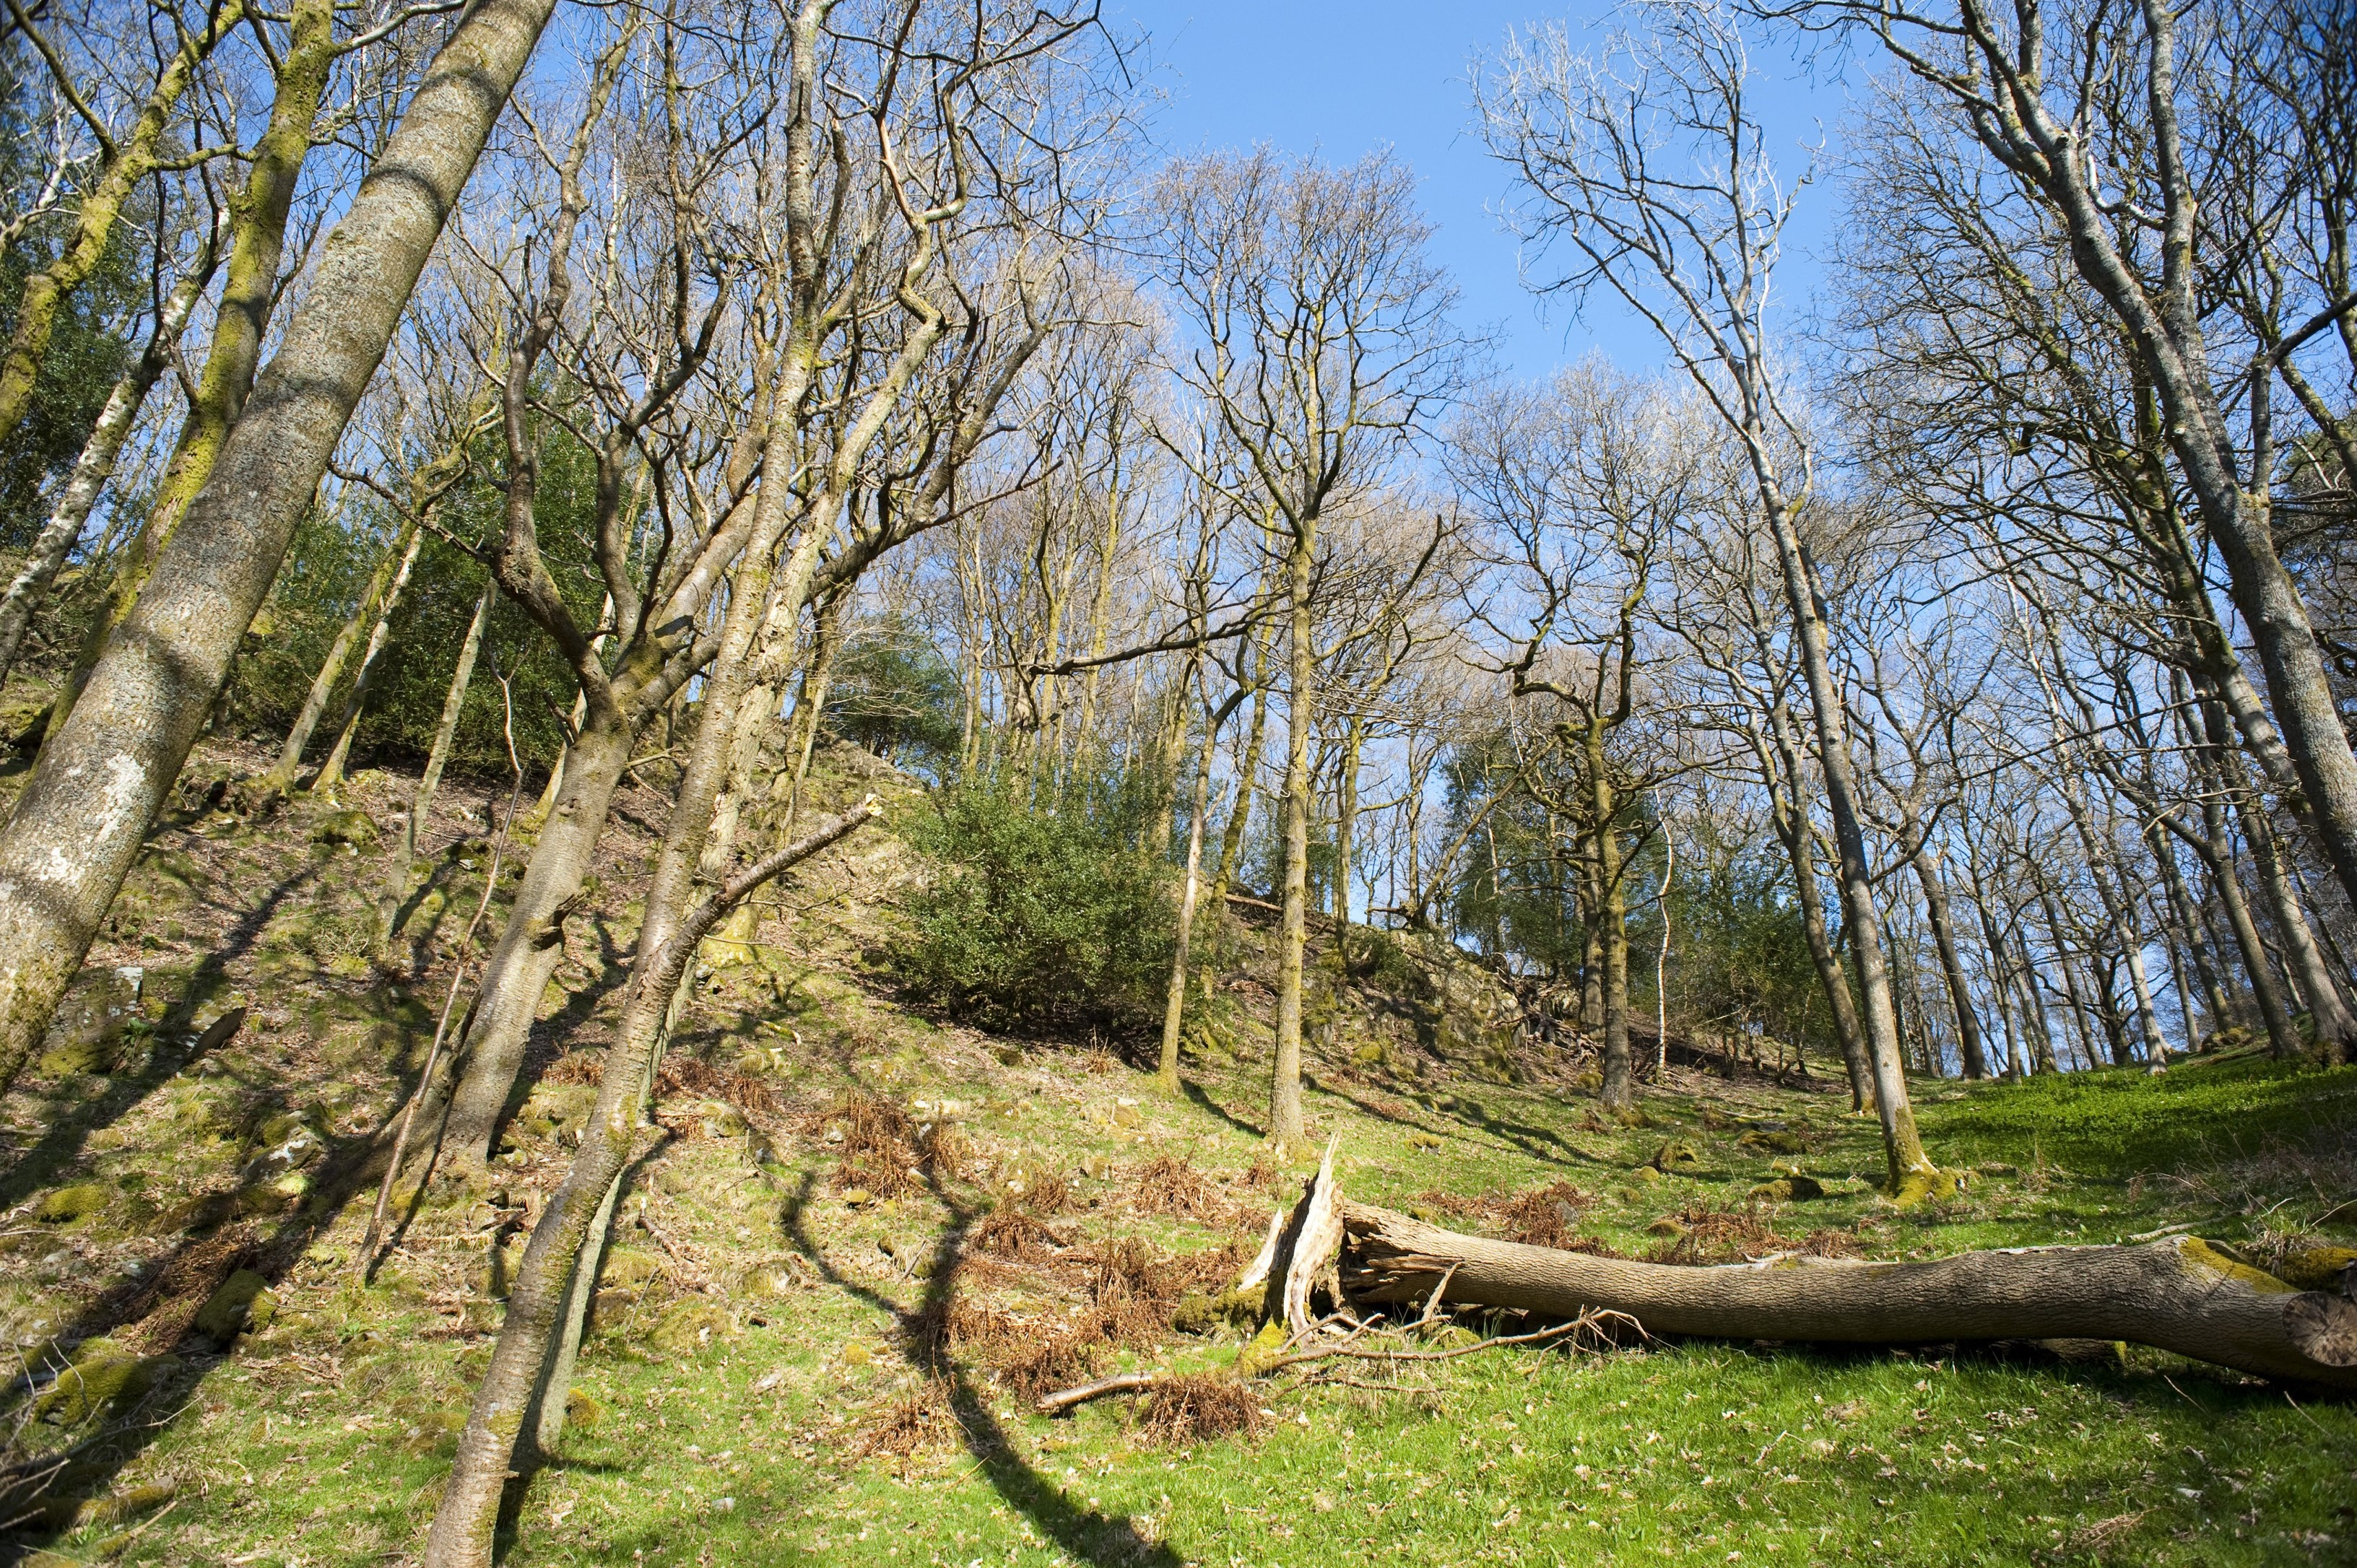 Bare branched deciduous trees in a woodland clearing on a gentle hillside with green grass and a felled tree trunk in the centre